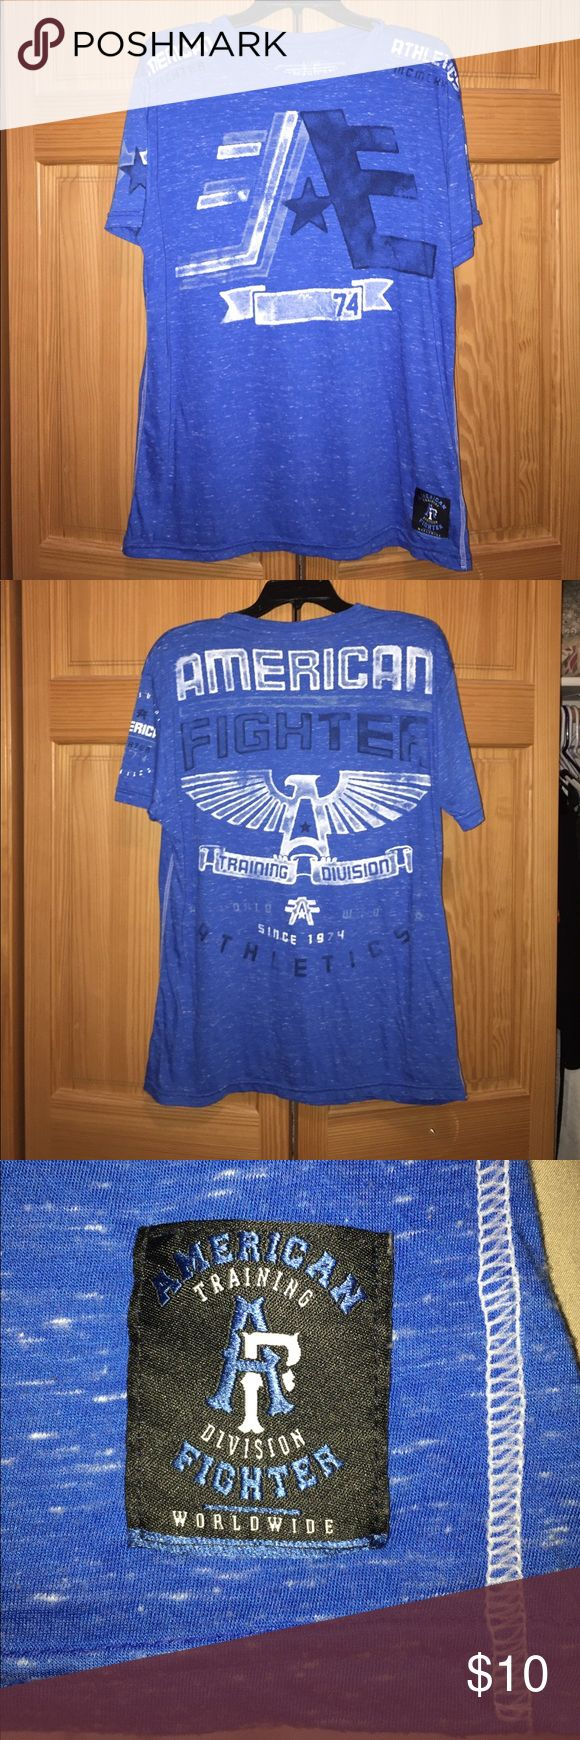 Men's American Fighter T shirt Men's American Fighter T Shirt. SIZE XL . Shirt is a heathered bright blue with white detailing. American Fighter Shirts Tees - Short Sleeve